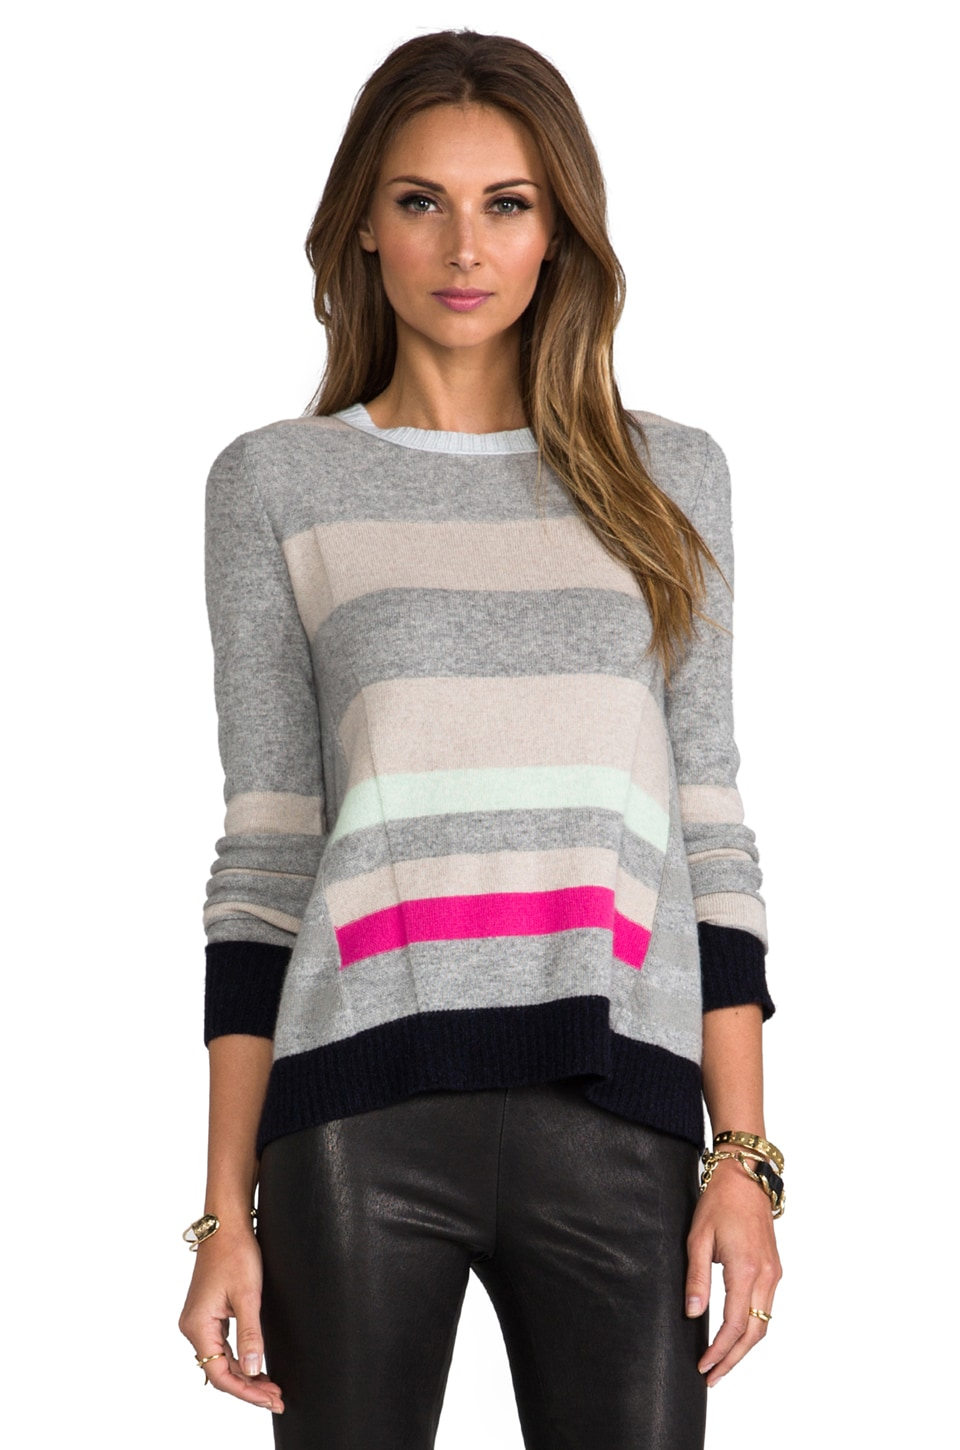 Diane von Furstenberg Beth Stripe Sweater in Sea Mist/Heather Grey